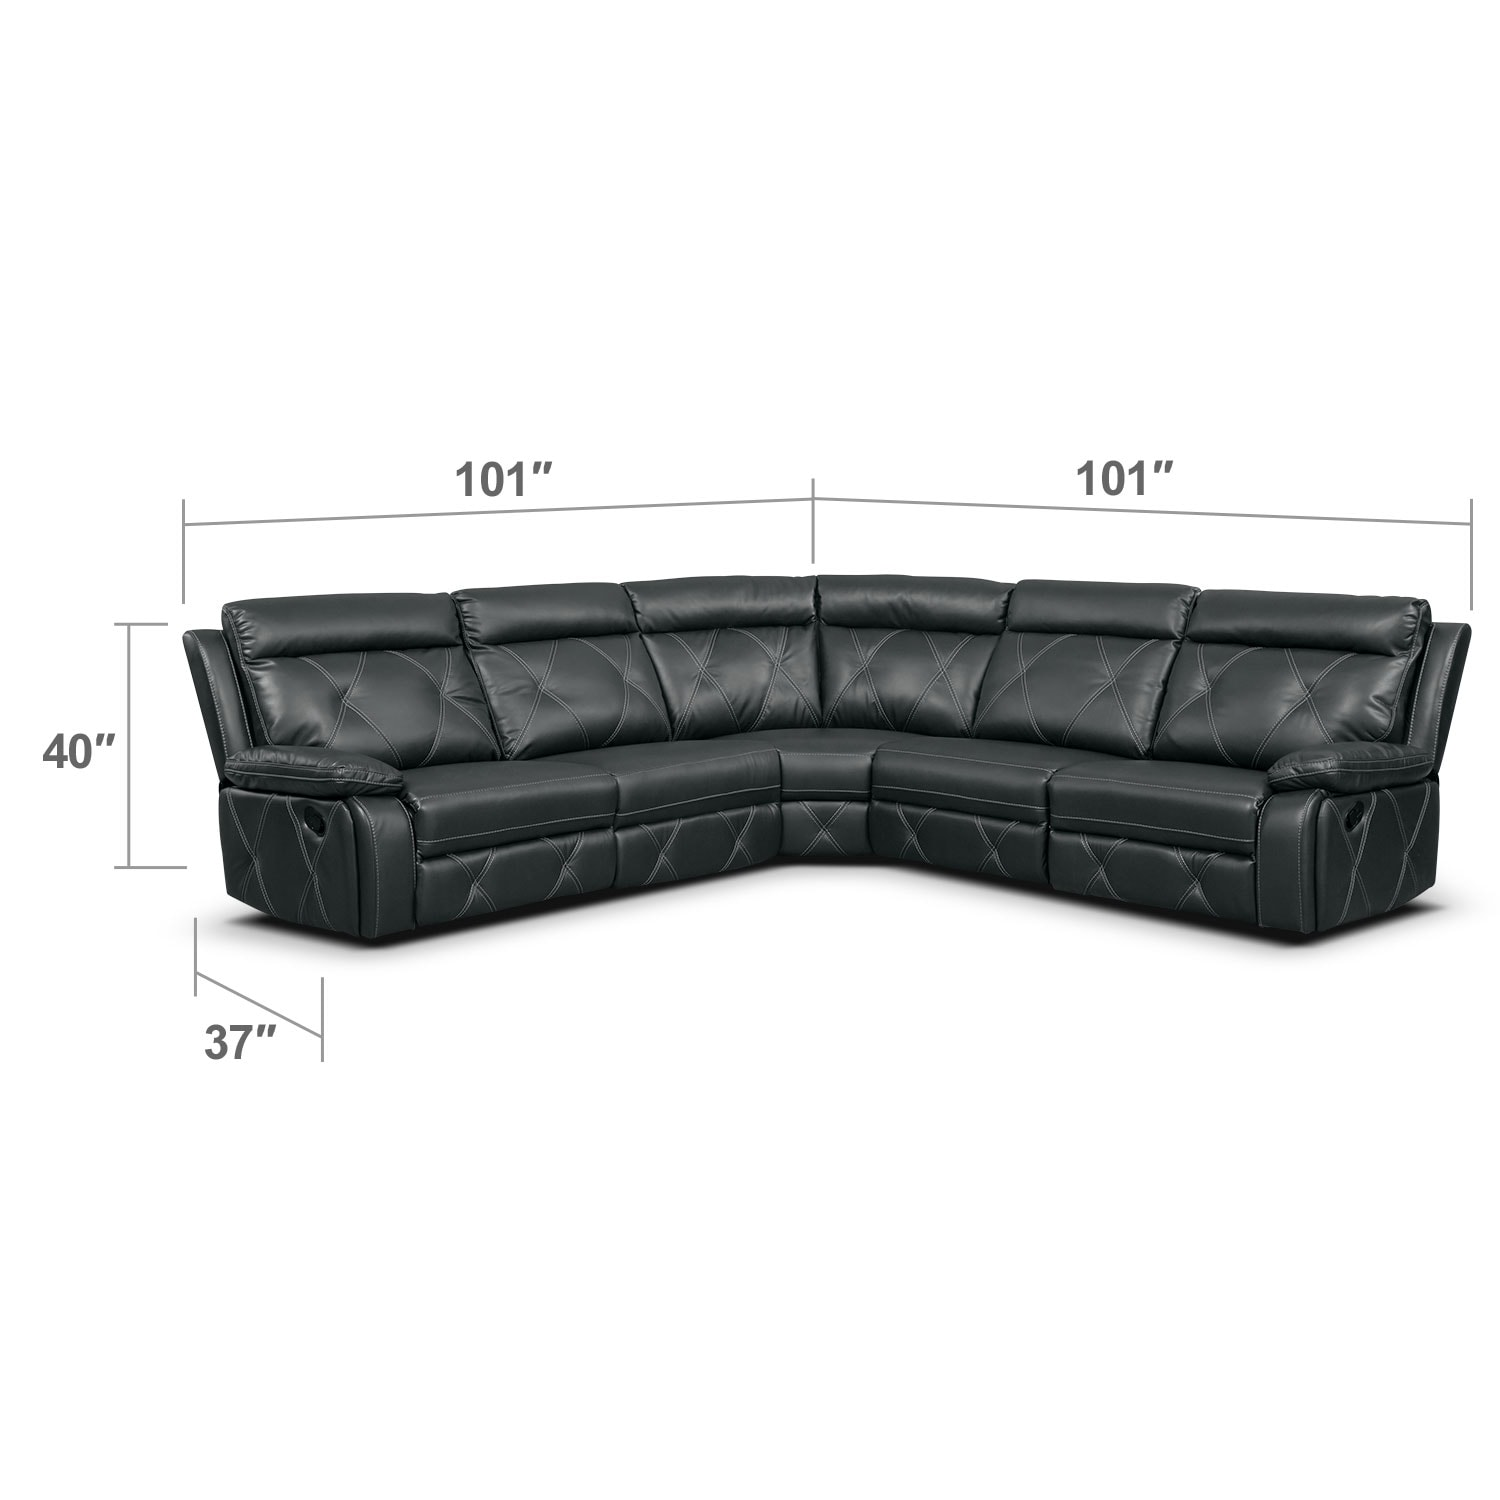 Living Room Furniture - Dante Charcoal 5 Pc. Reclining Sectional w/ 3 Reclining Seats